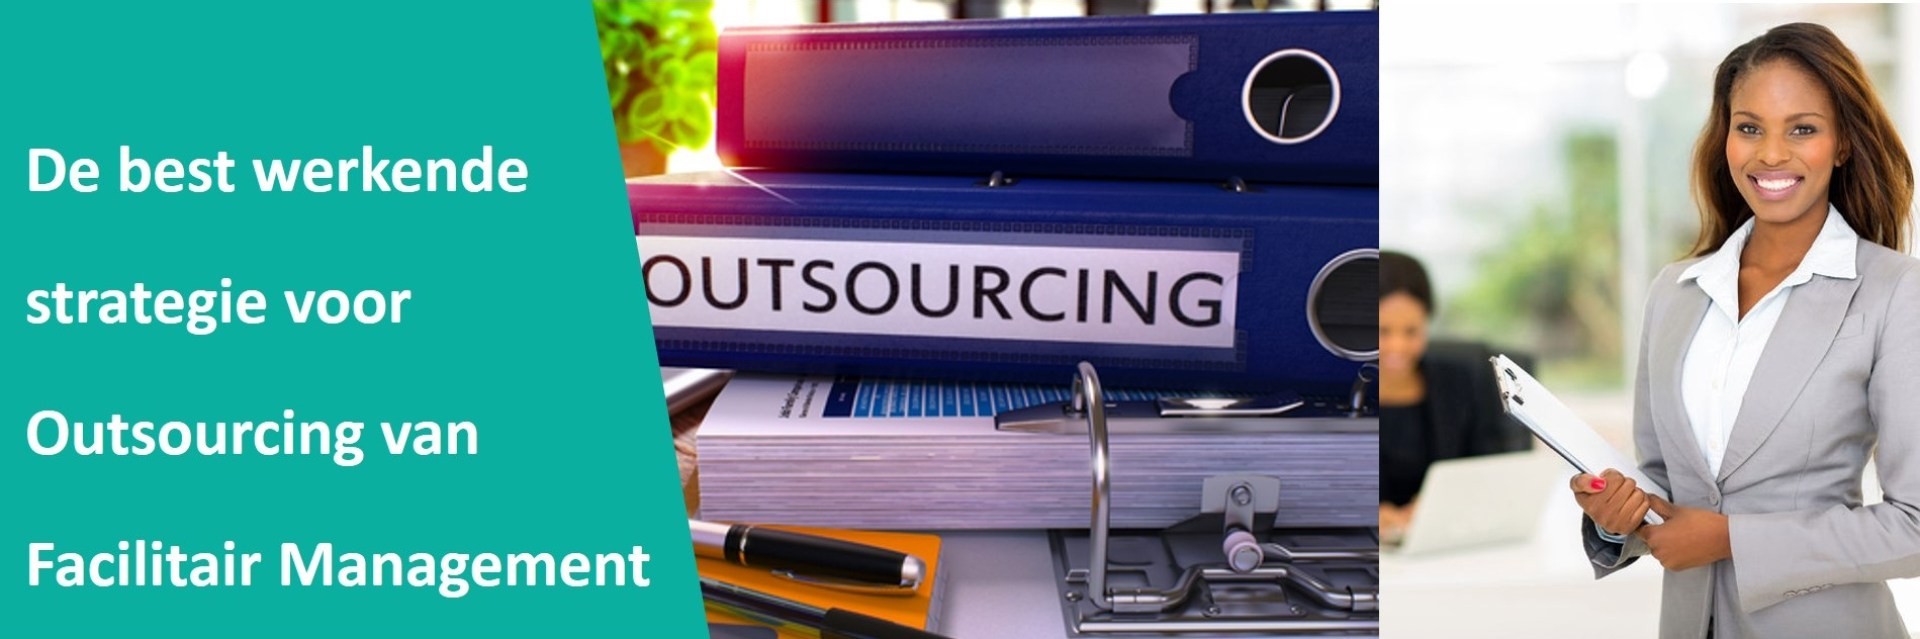 Outsourcing van Facilitair Management